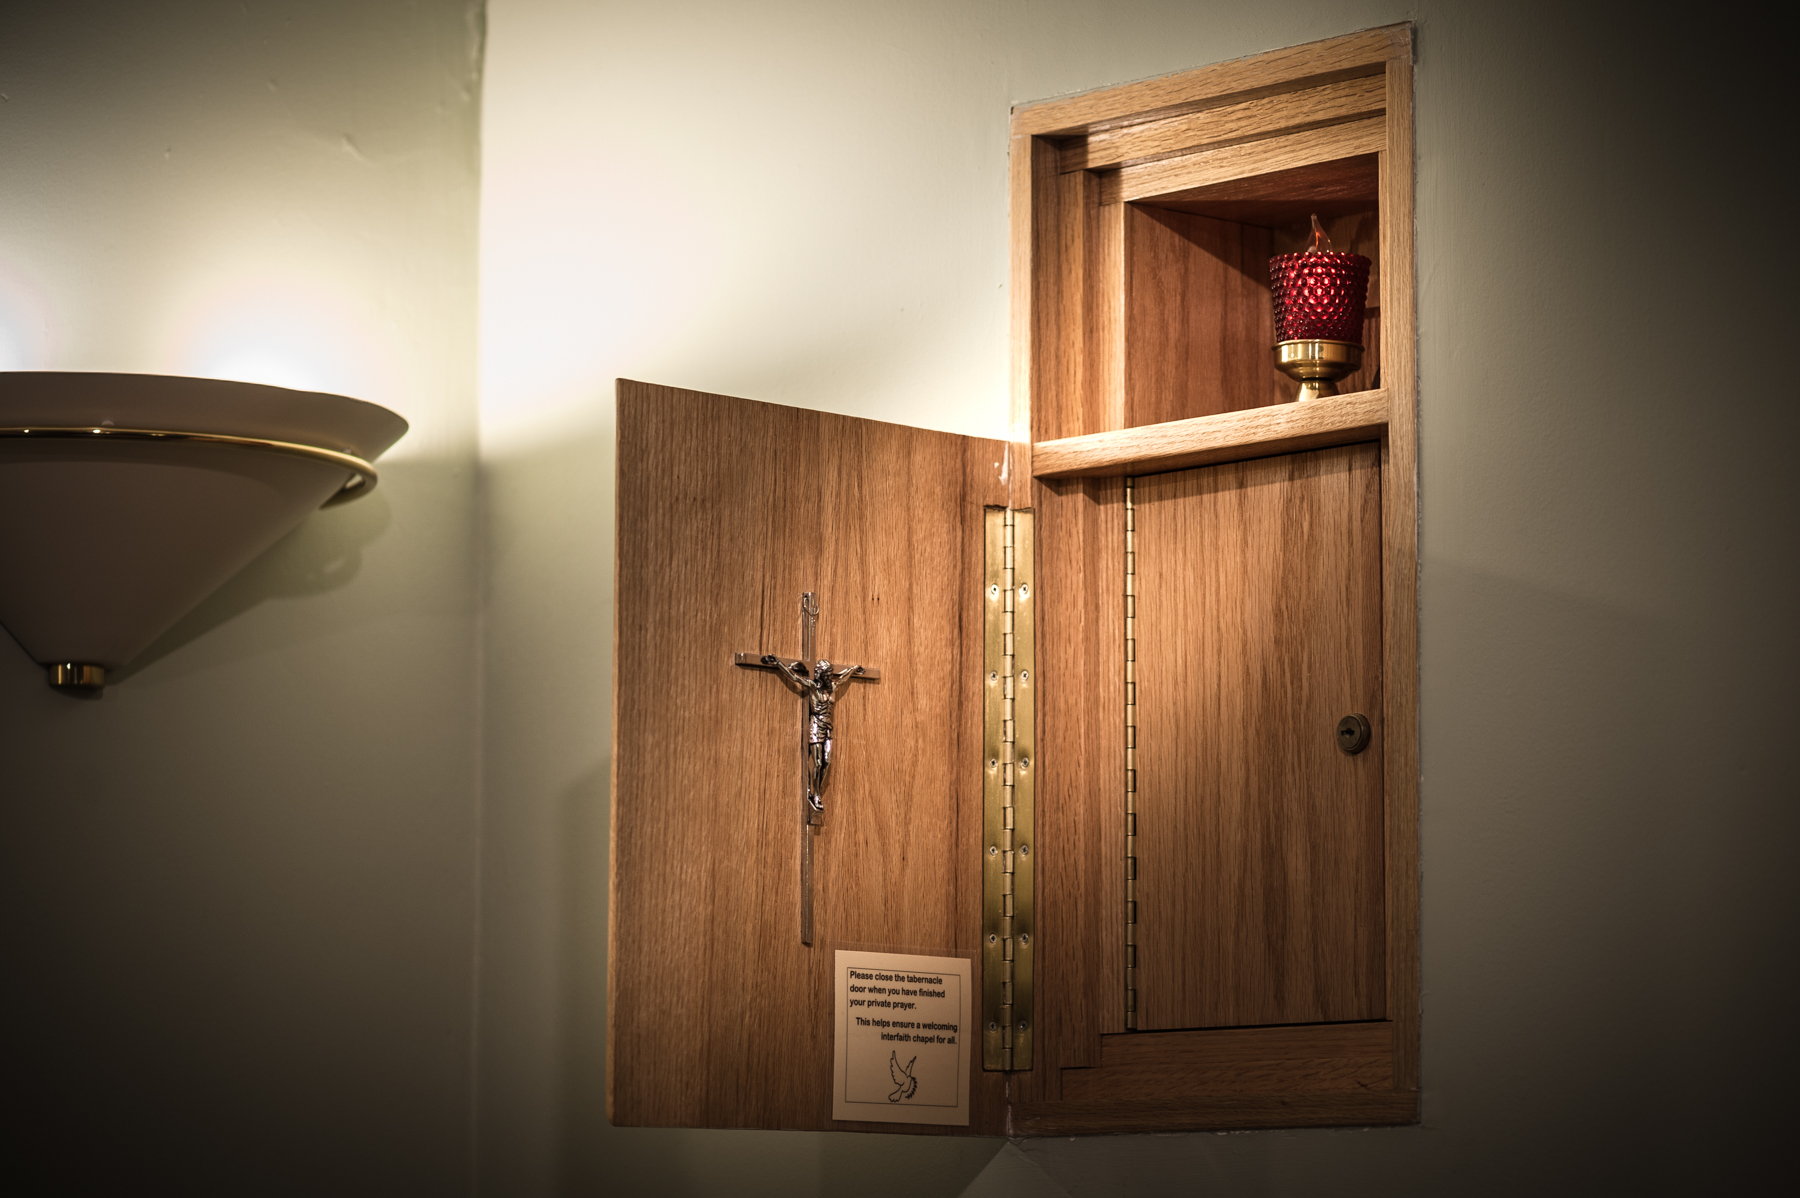 A tabernacle holds communion.